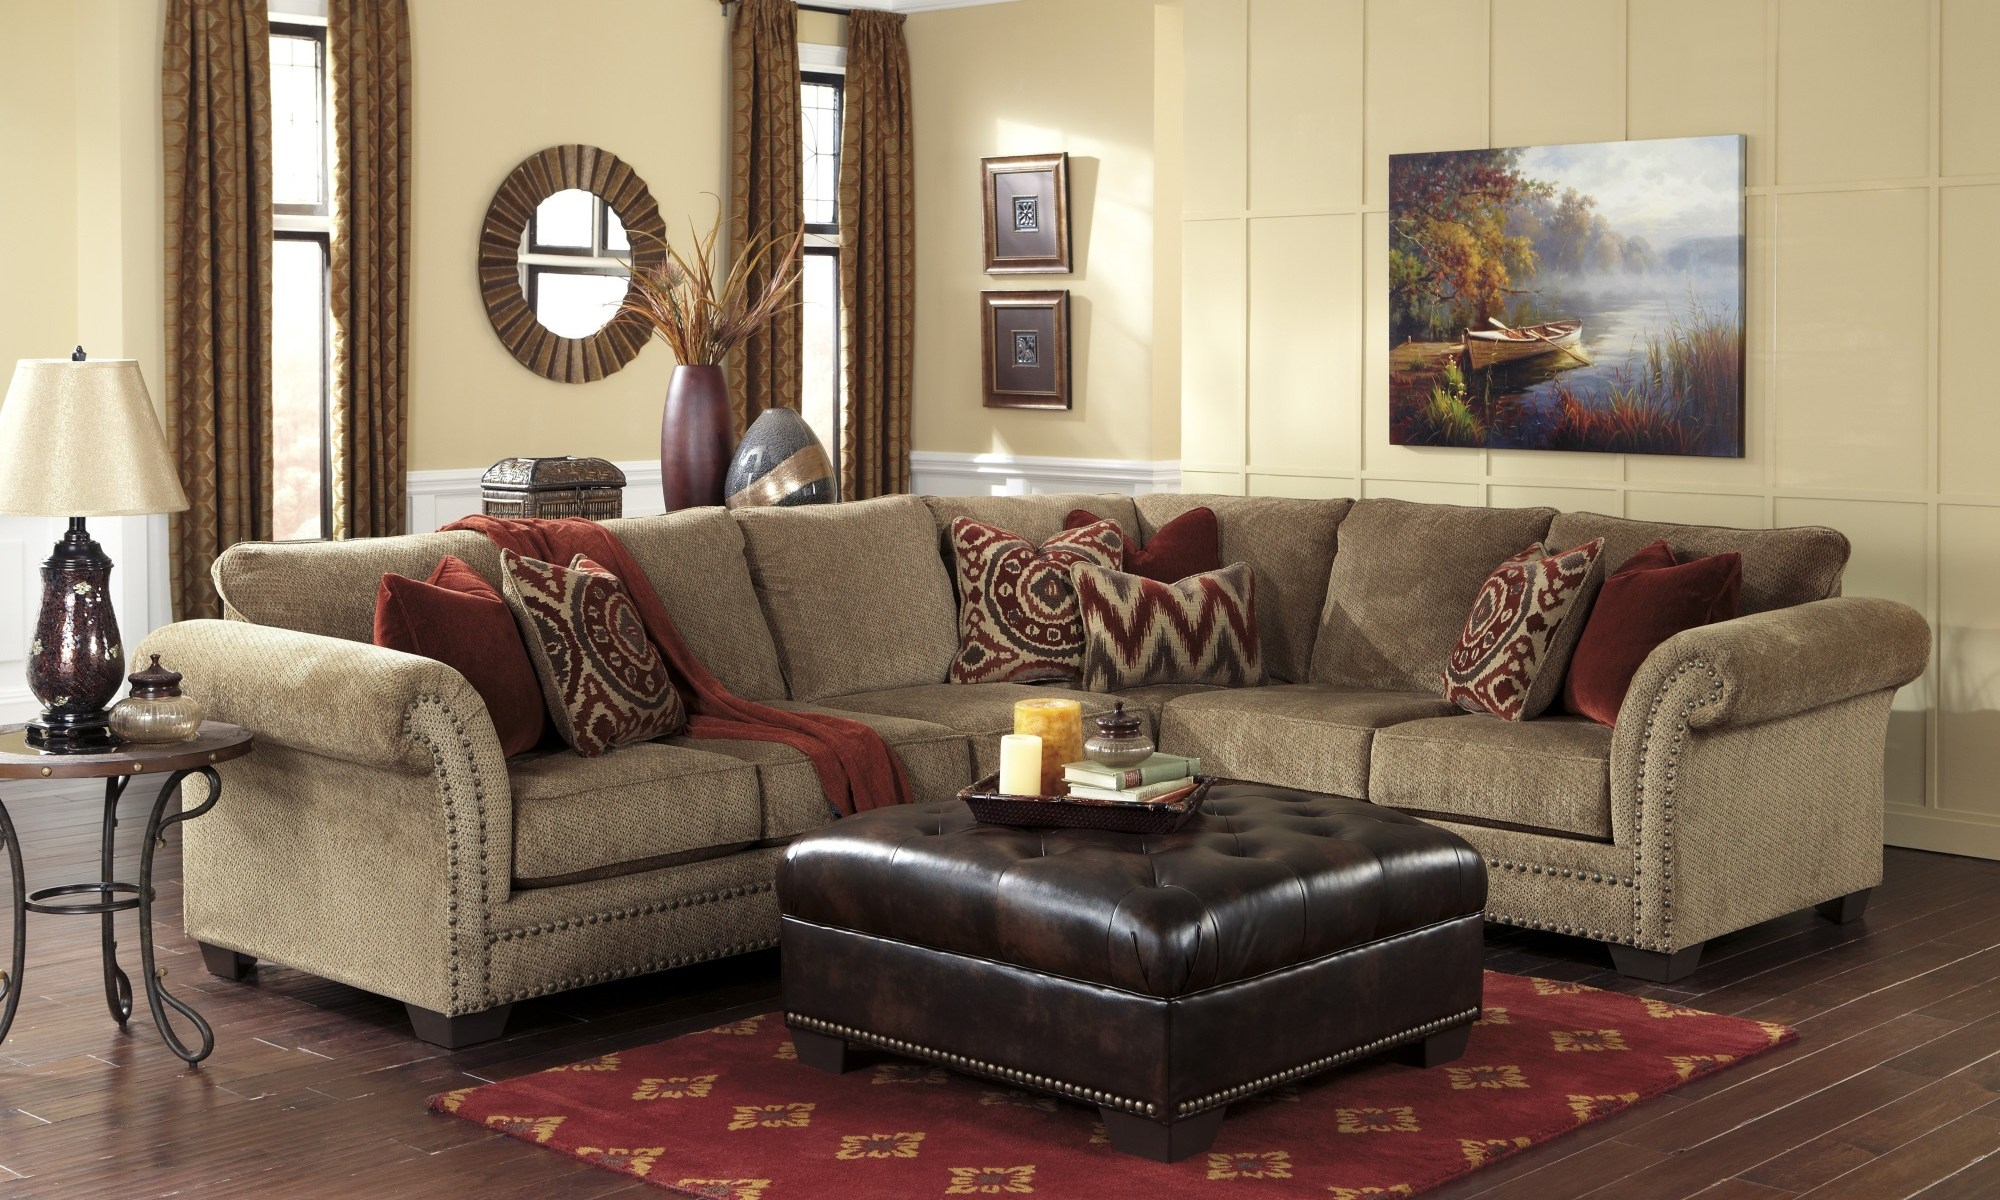 Functional Stylish Furniture for Every Room – The Clearance Castle LLC